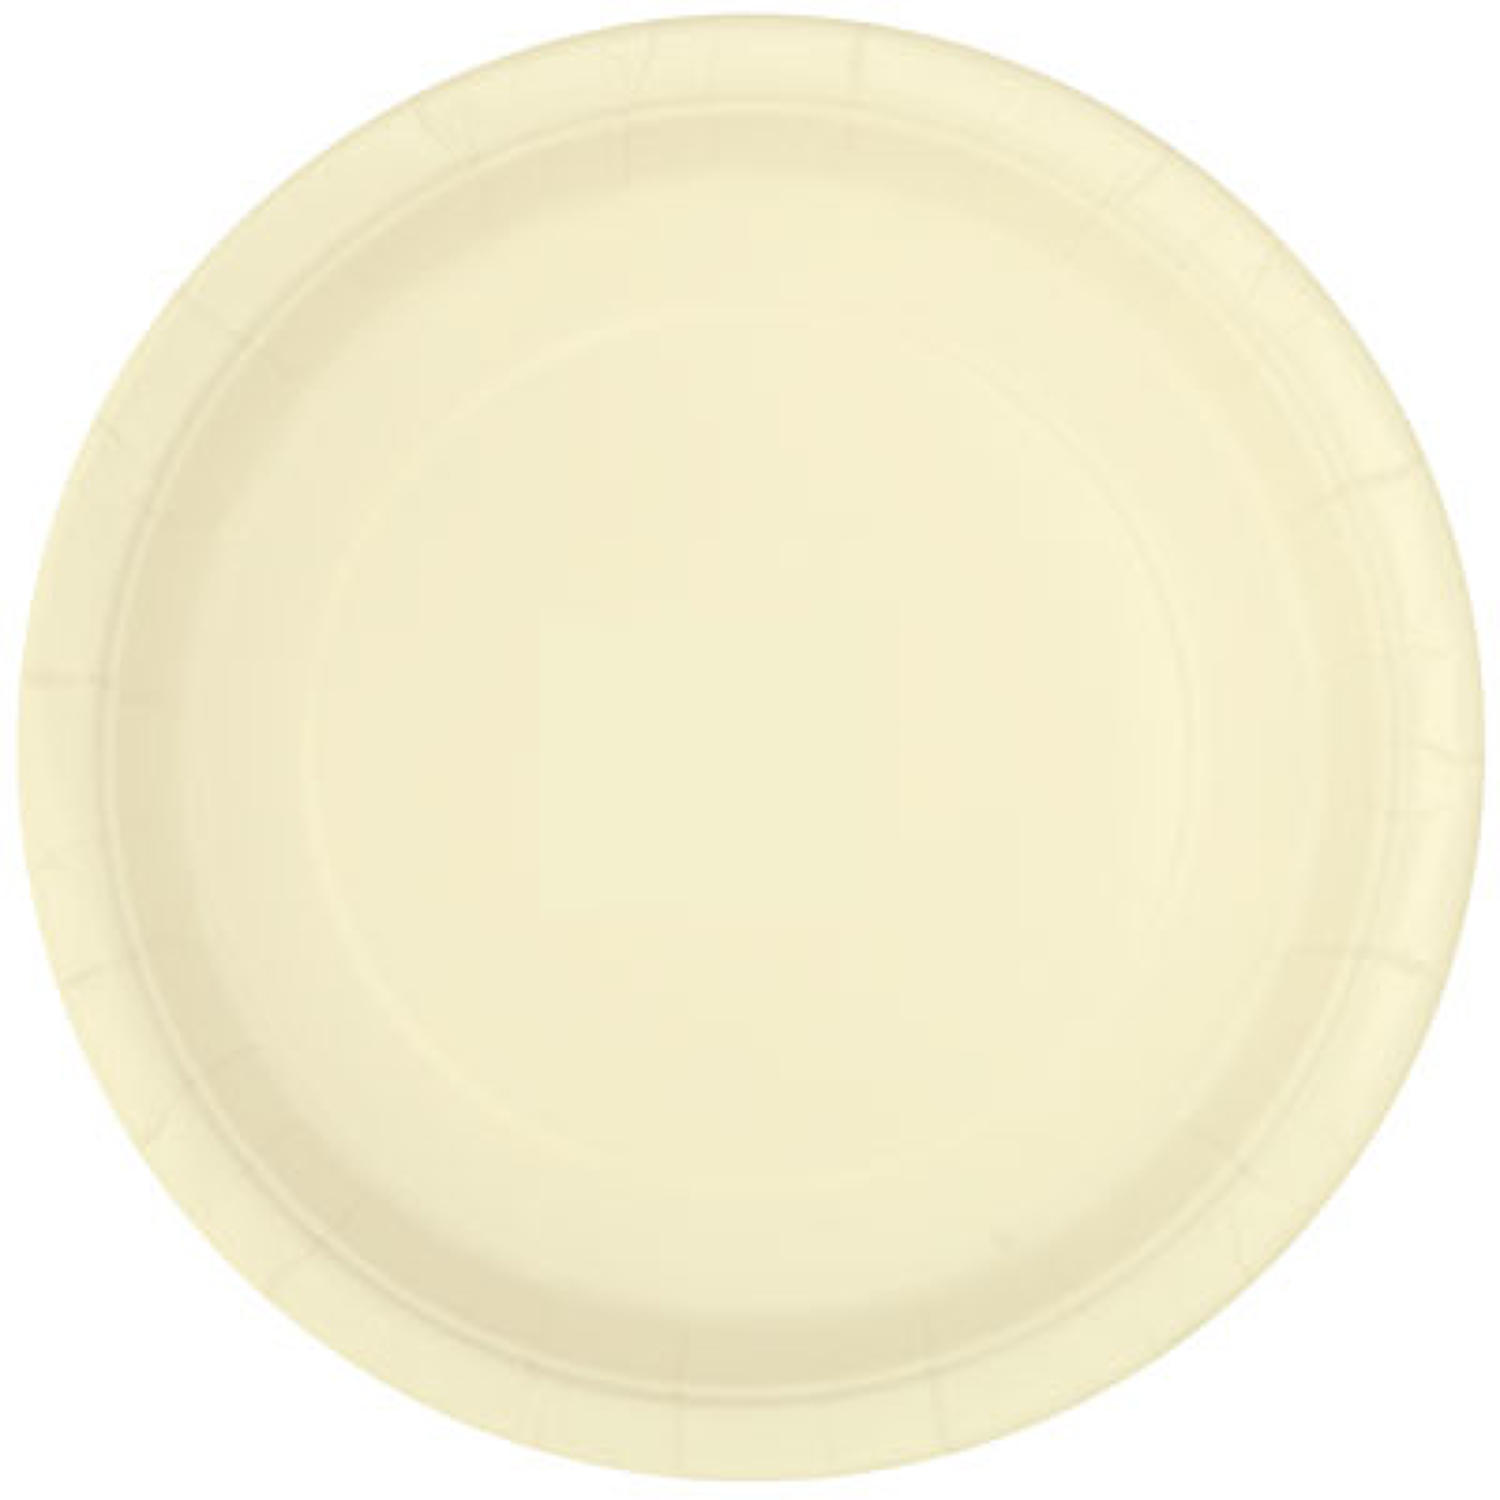 Ivory paper plates - 9